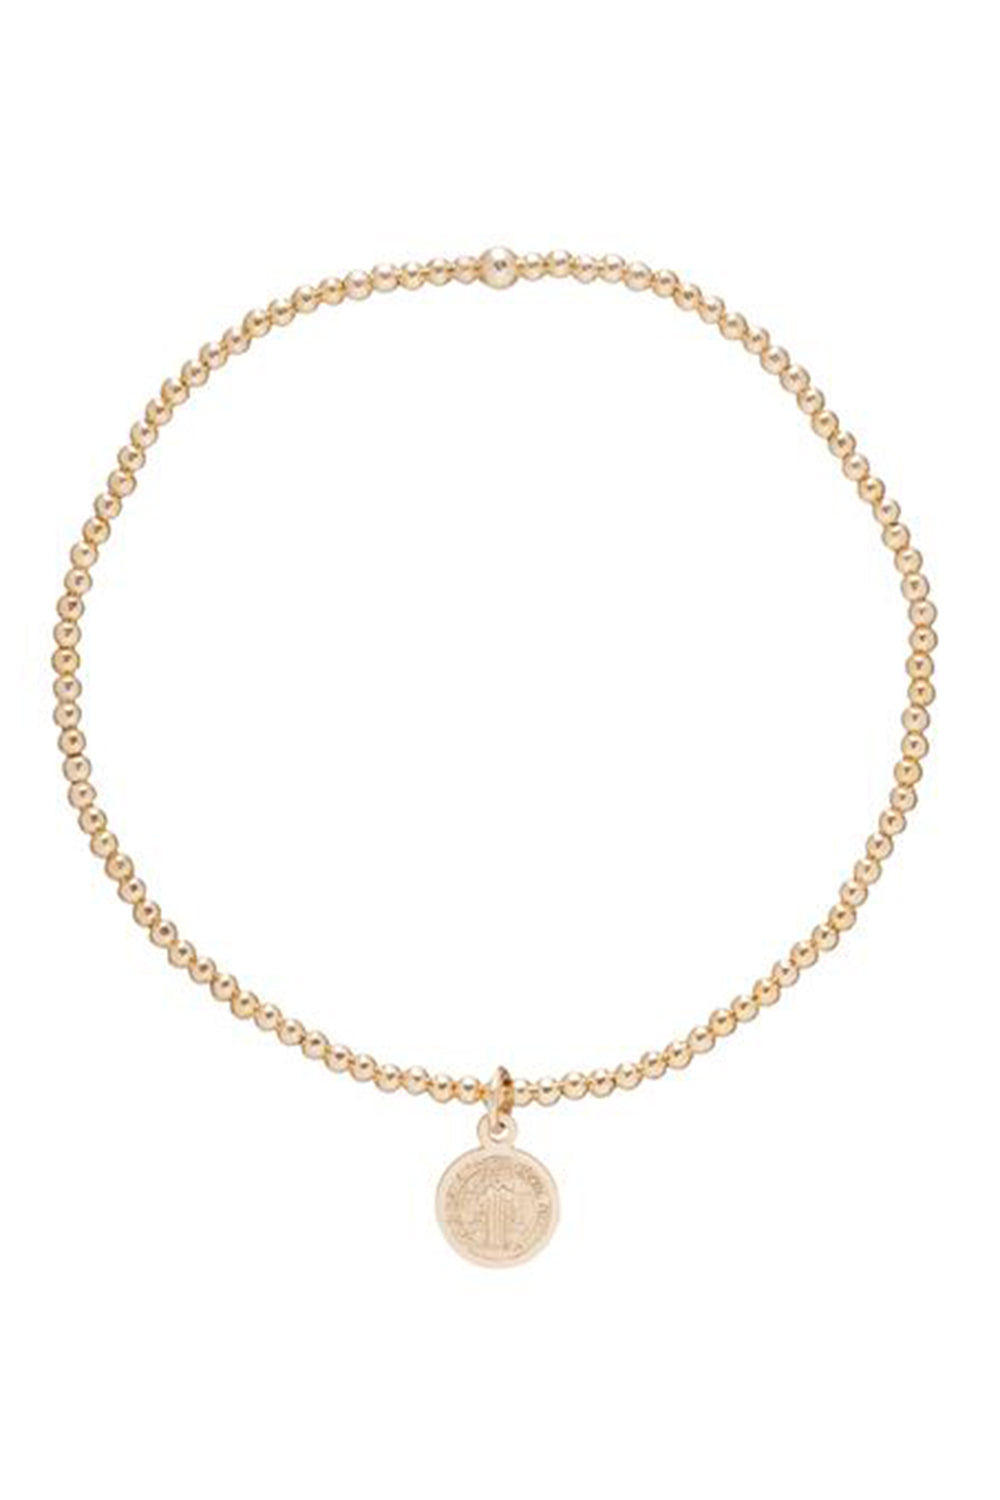 EN Blessing Small Bracelet - Gold